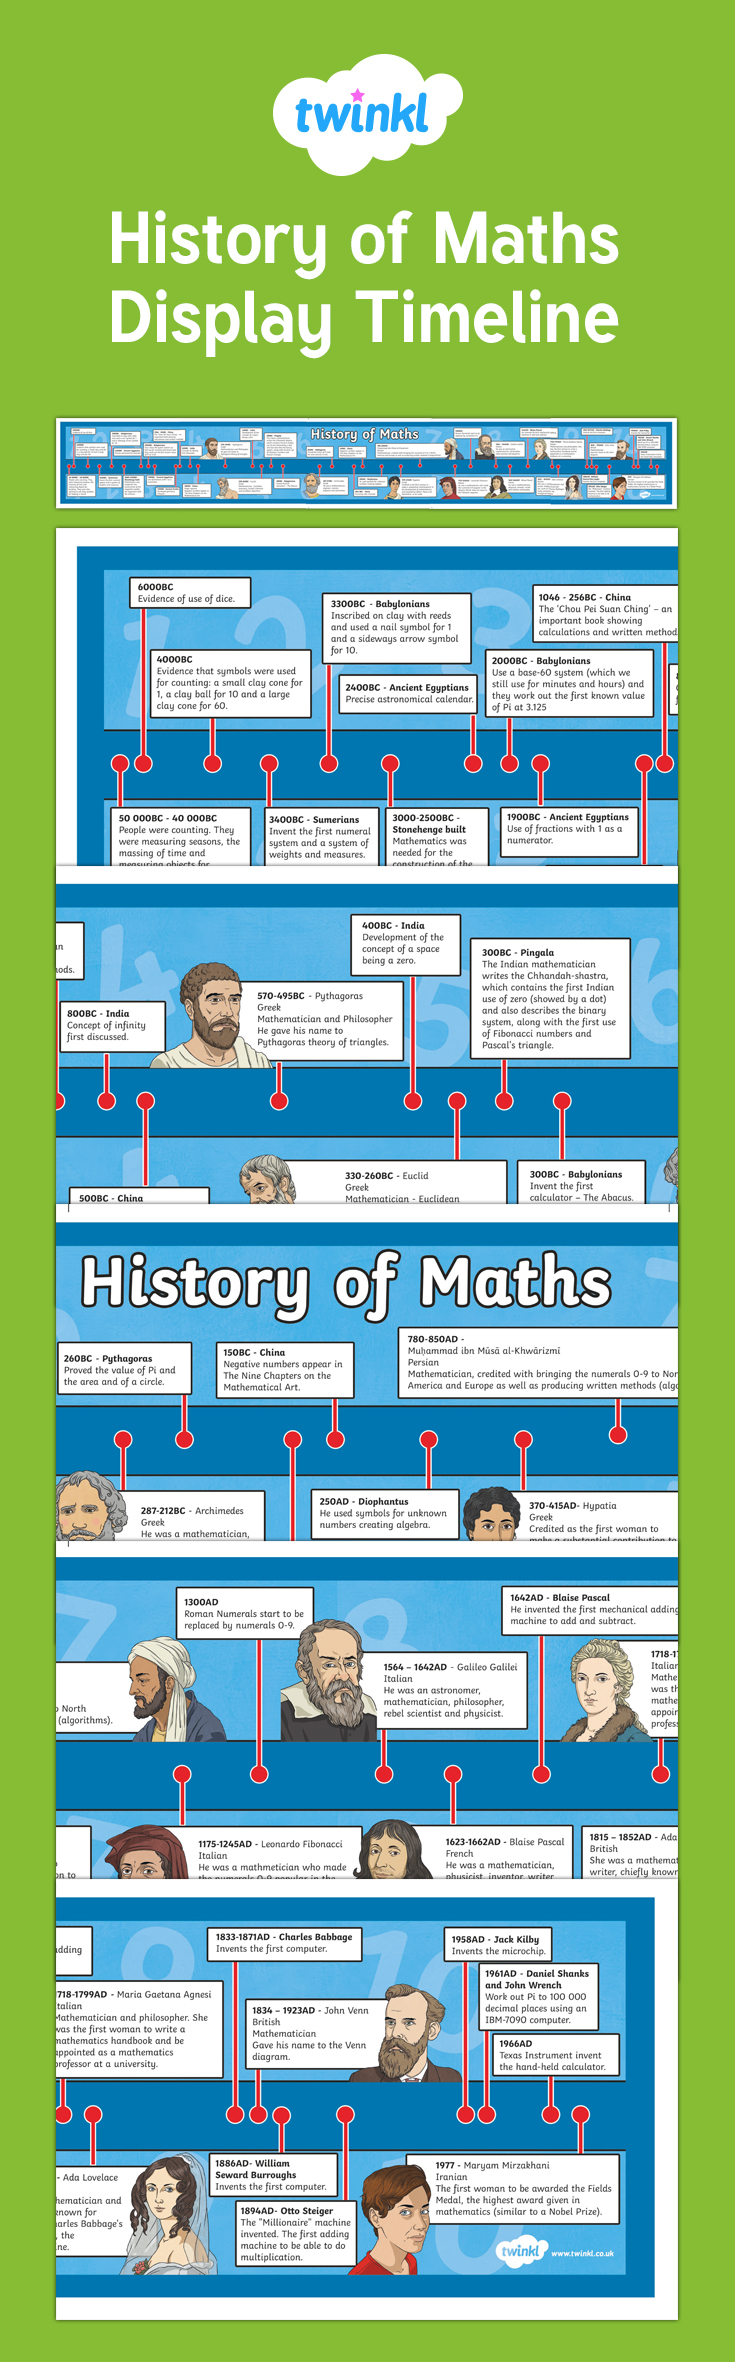 This timeline shows the history of Maths including some key ...